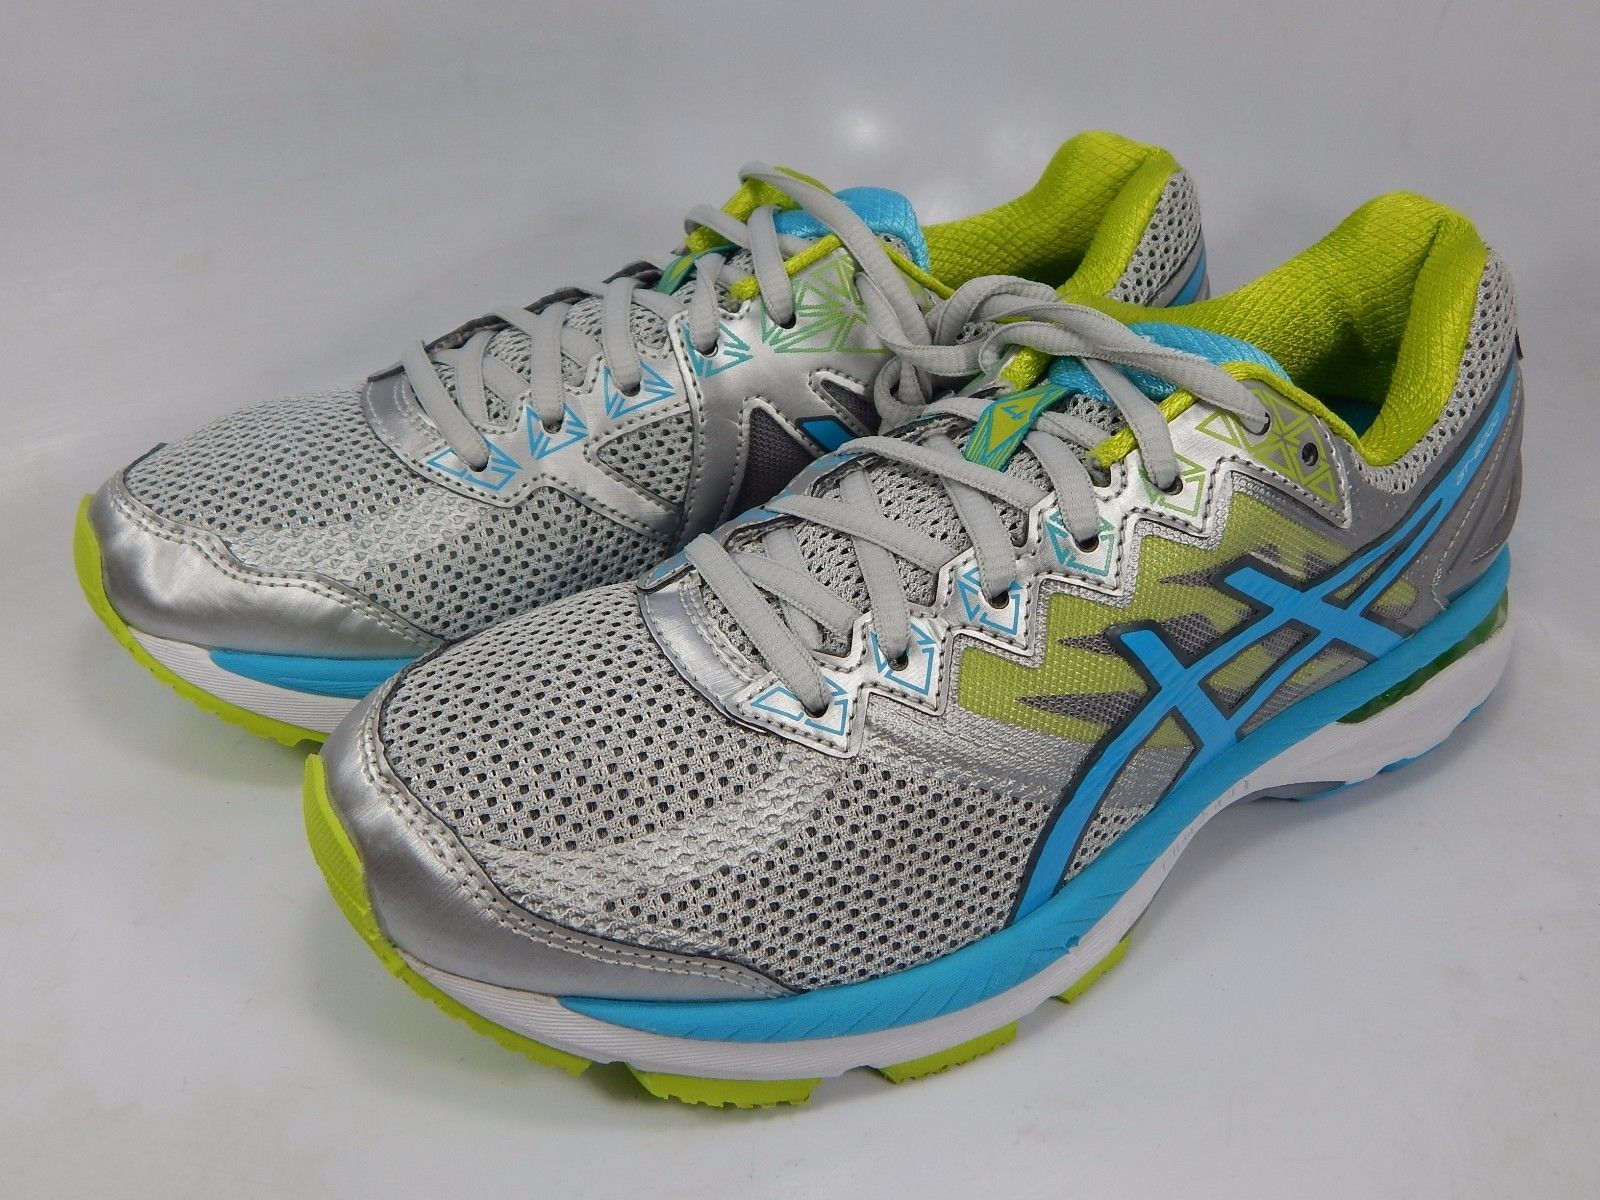 Asics GT 2000 v 4 Women's Running Shoes Size US 8.5 M (B) EU 40 Silver T656N